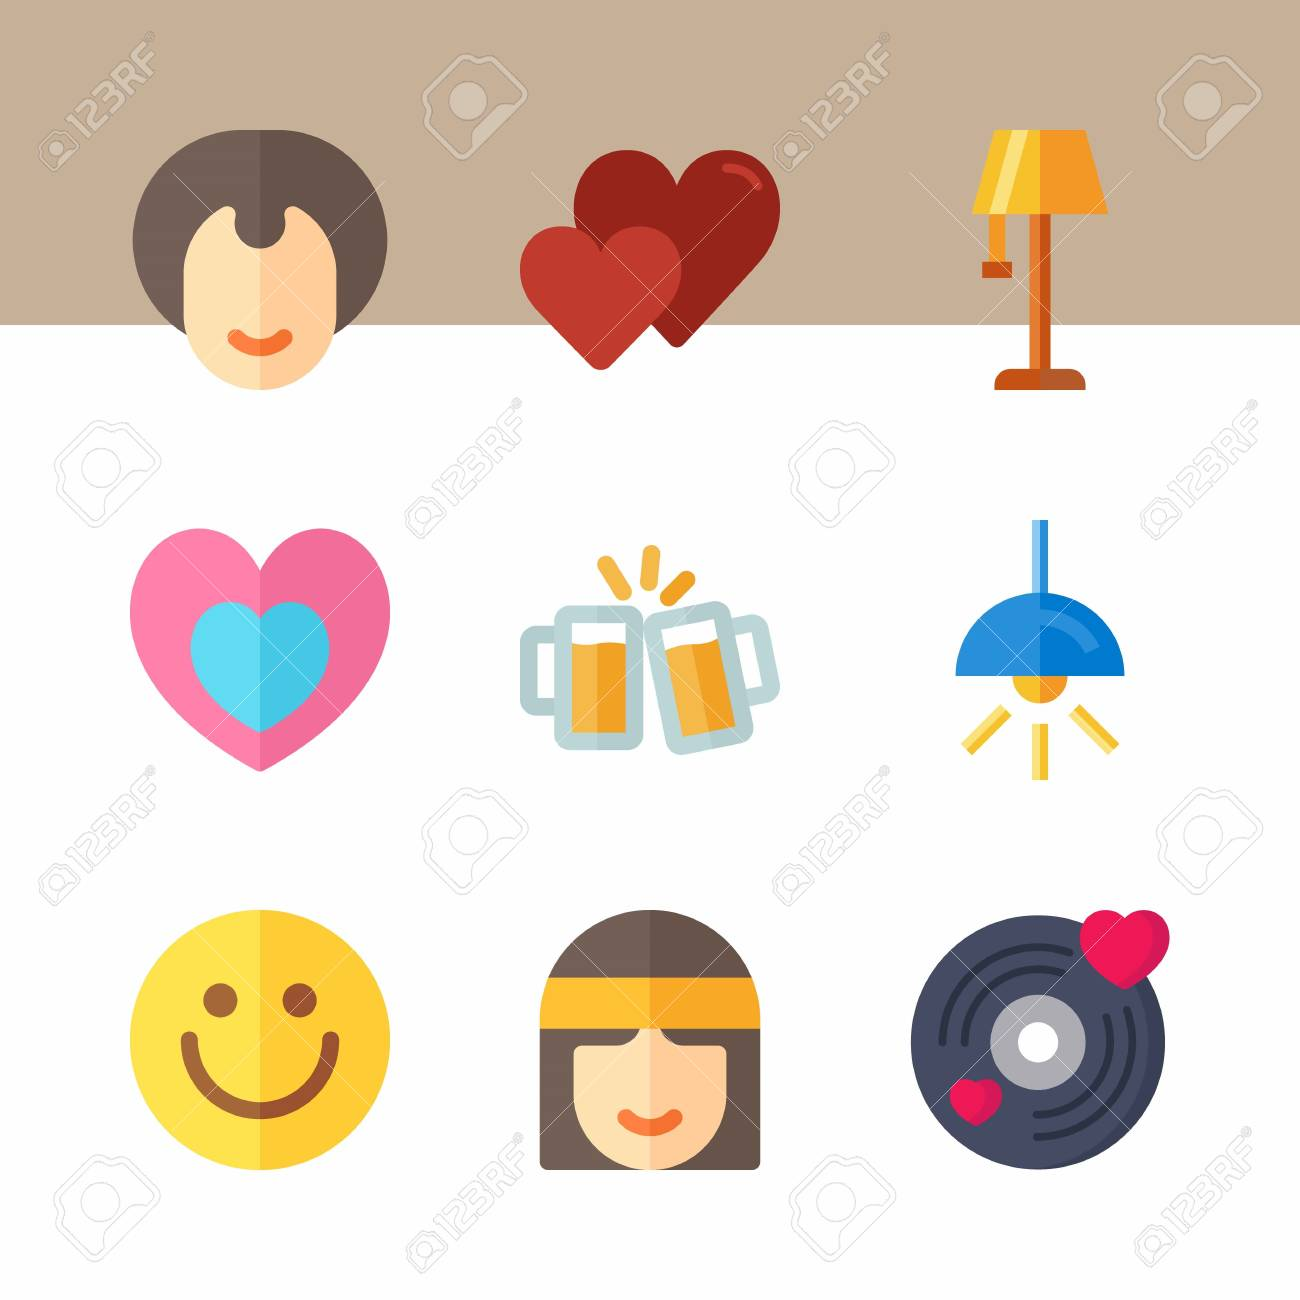 icon set about hippies with beer, hippie and emoji